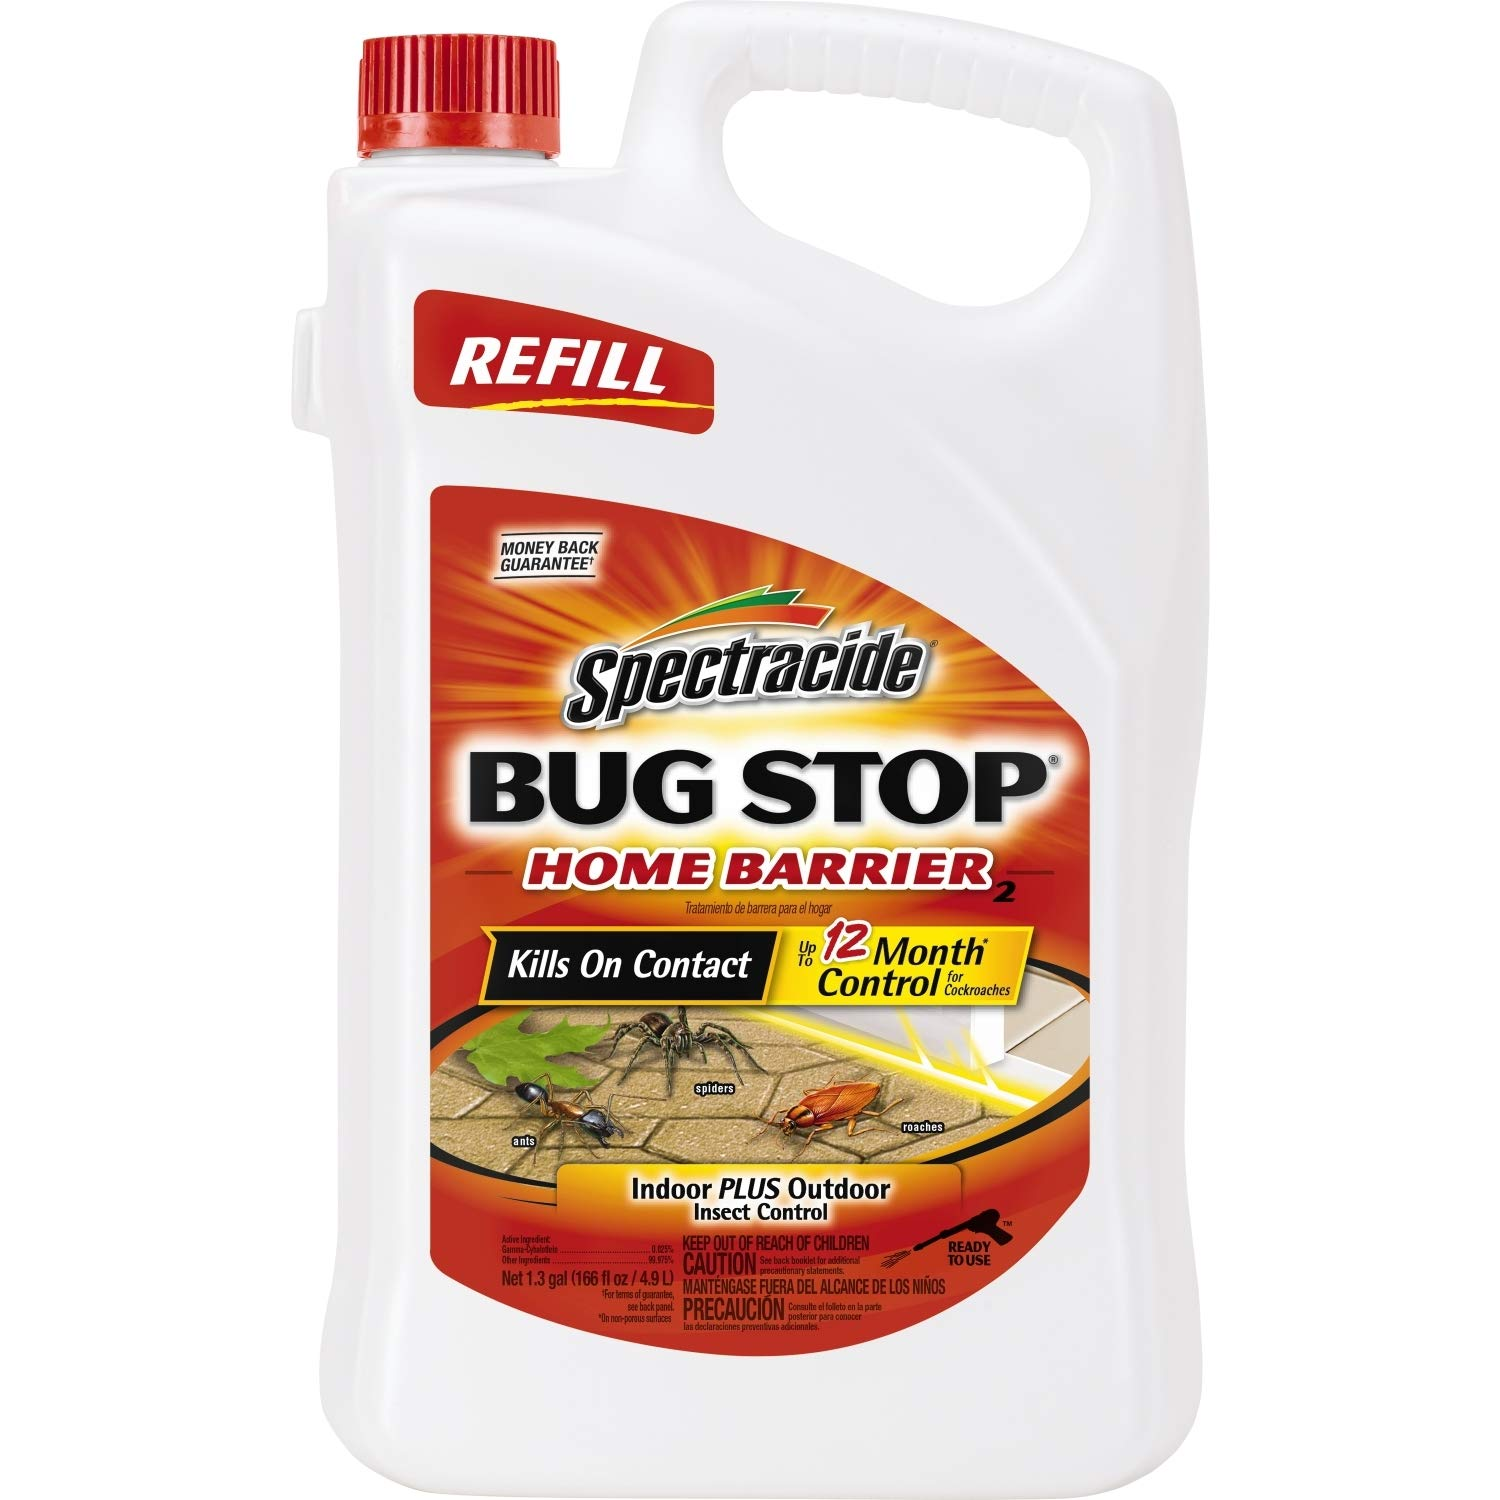 Spectracide Bug Stop Home Barrier2 (AccuShot Refill) 96381